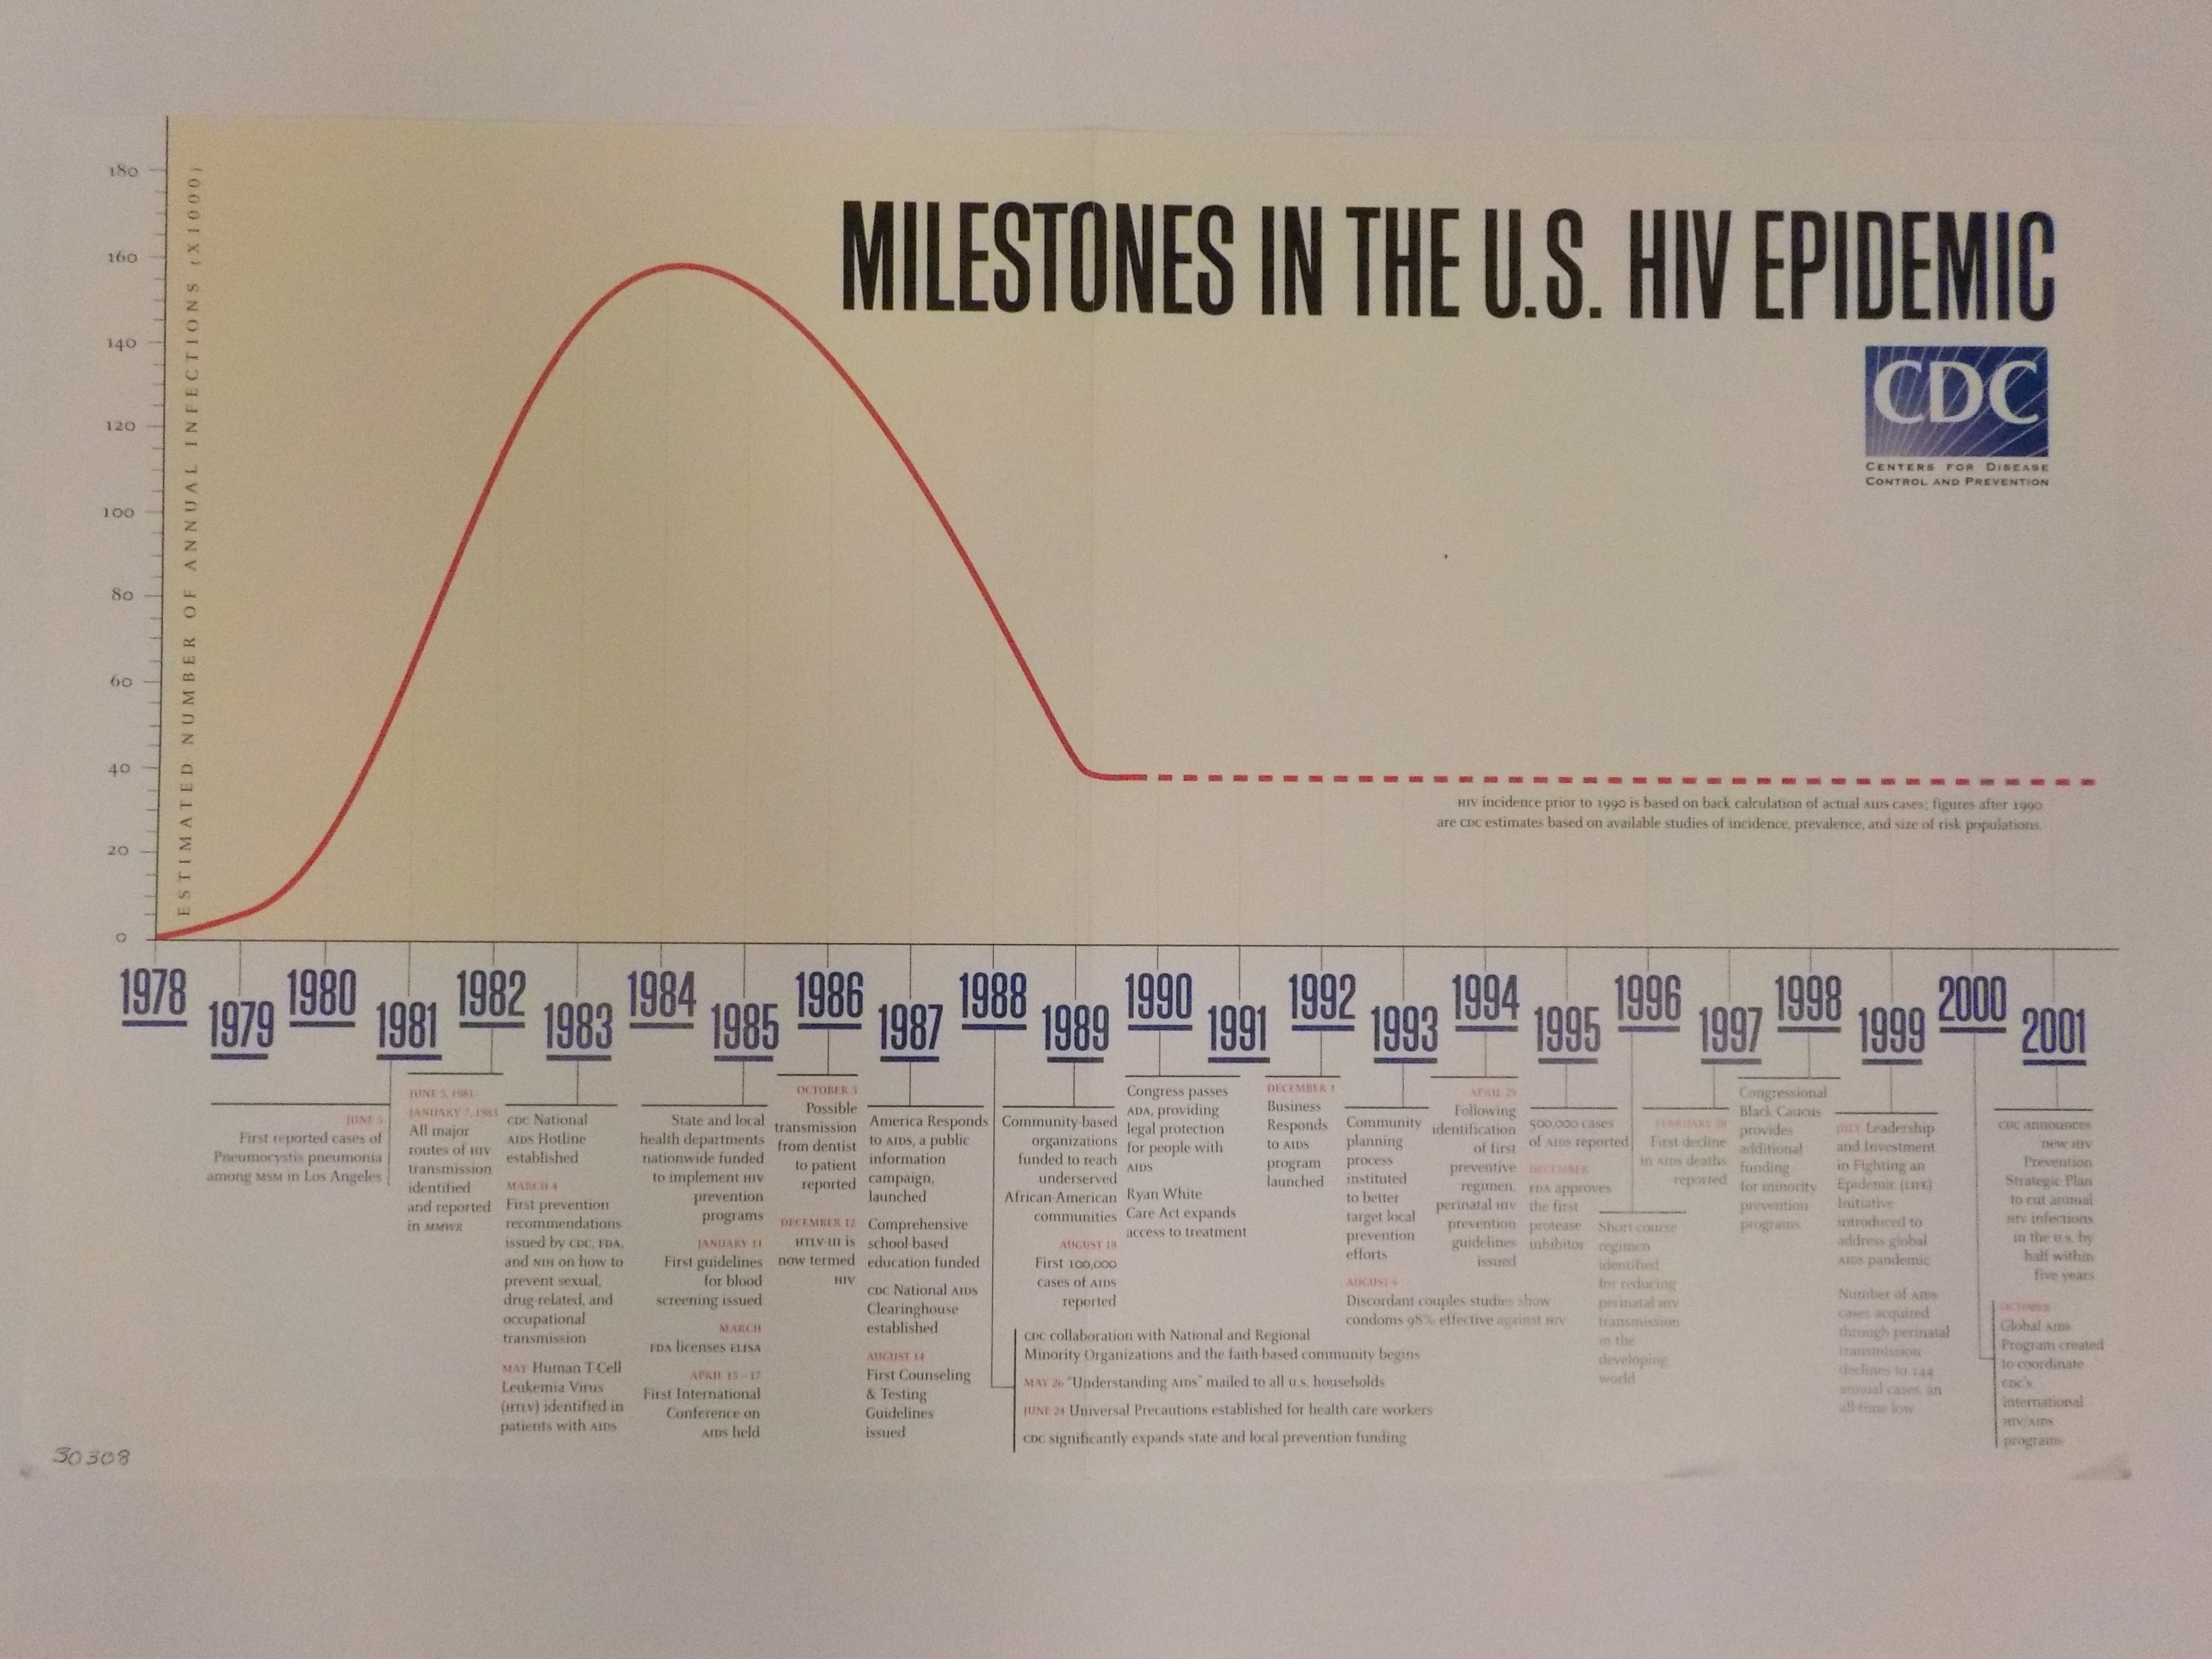 Milestones in the U.S. HIV epidemic